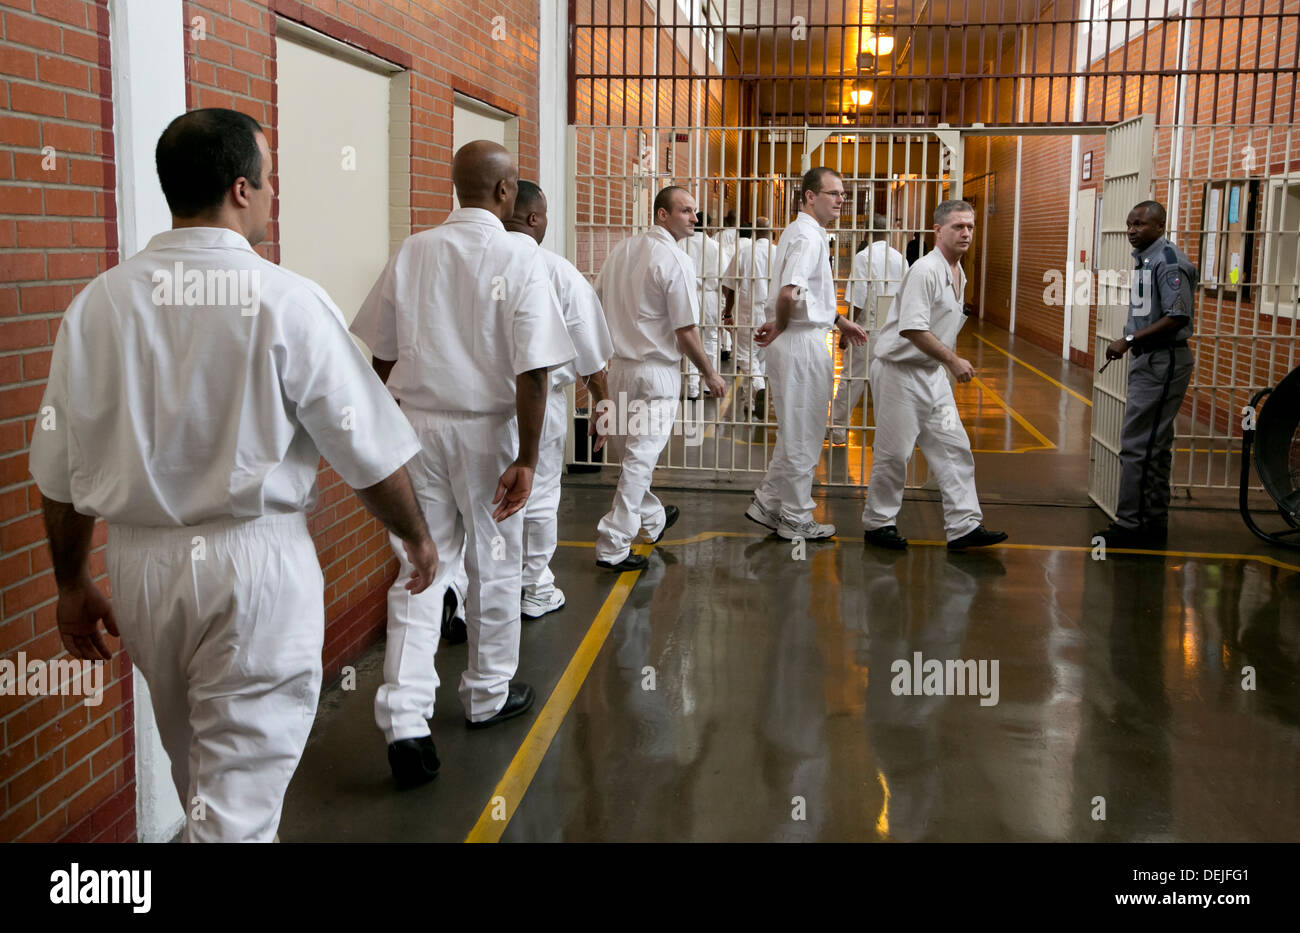 Felons Stock Photos & Felons Stock Images - Alamy